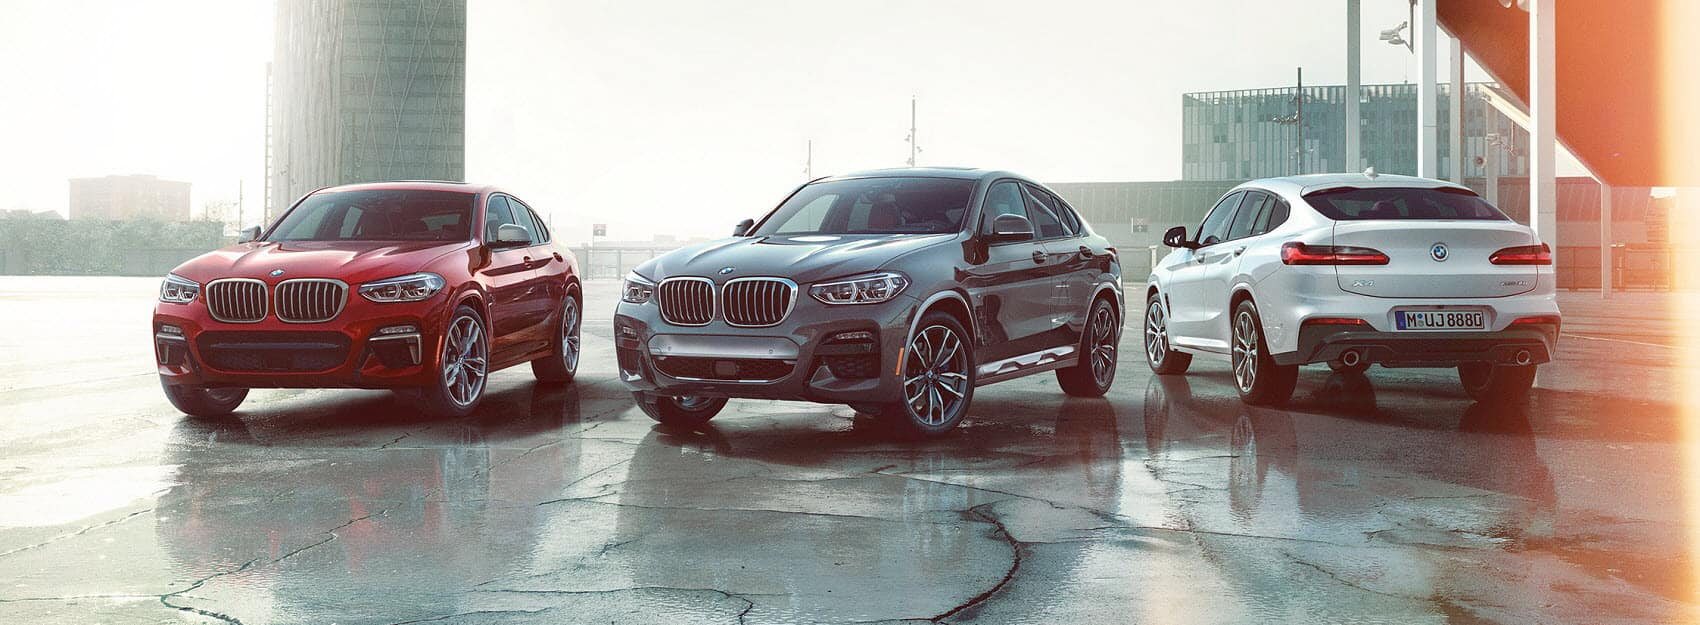 2019 BMW X4 at BMW Dealer near Me